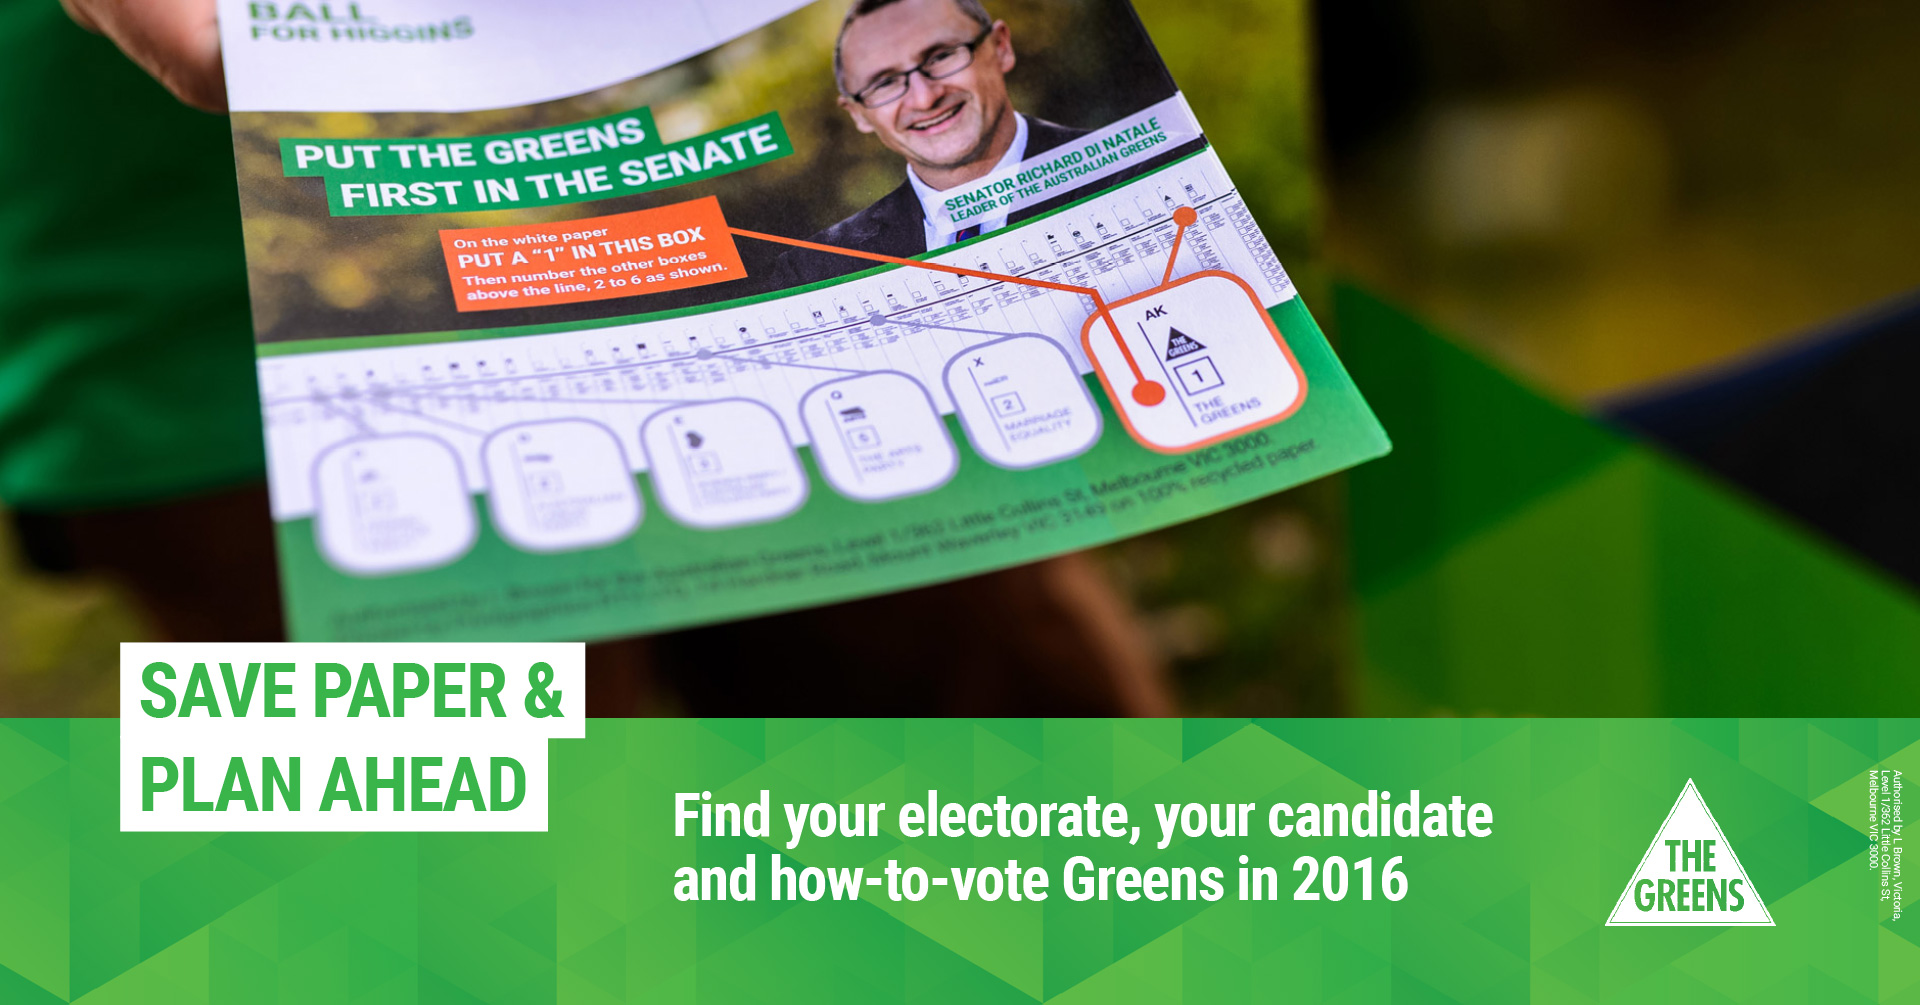 Save paper and plan ahead. Find your candidate, your electorate and how to vote Greens in 2016